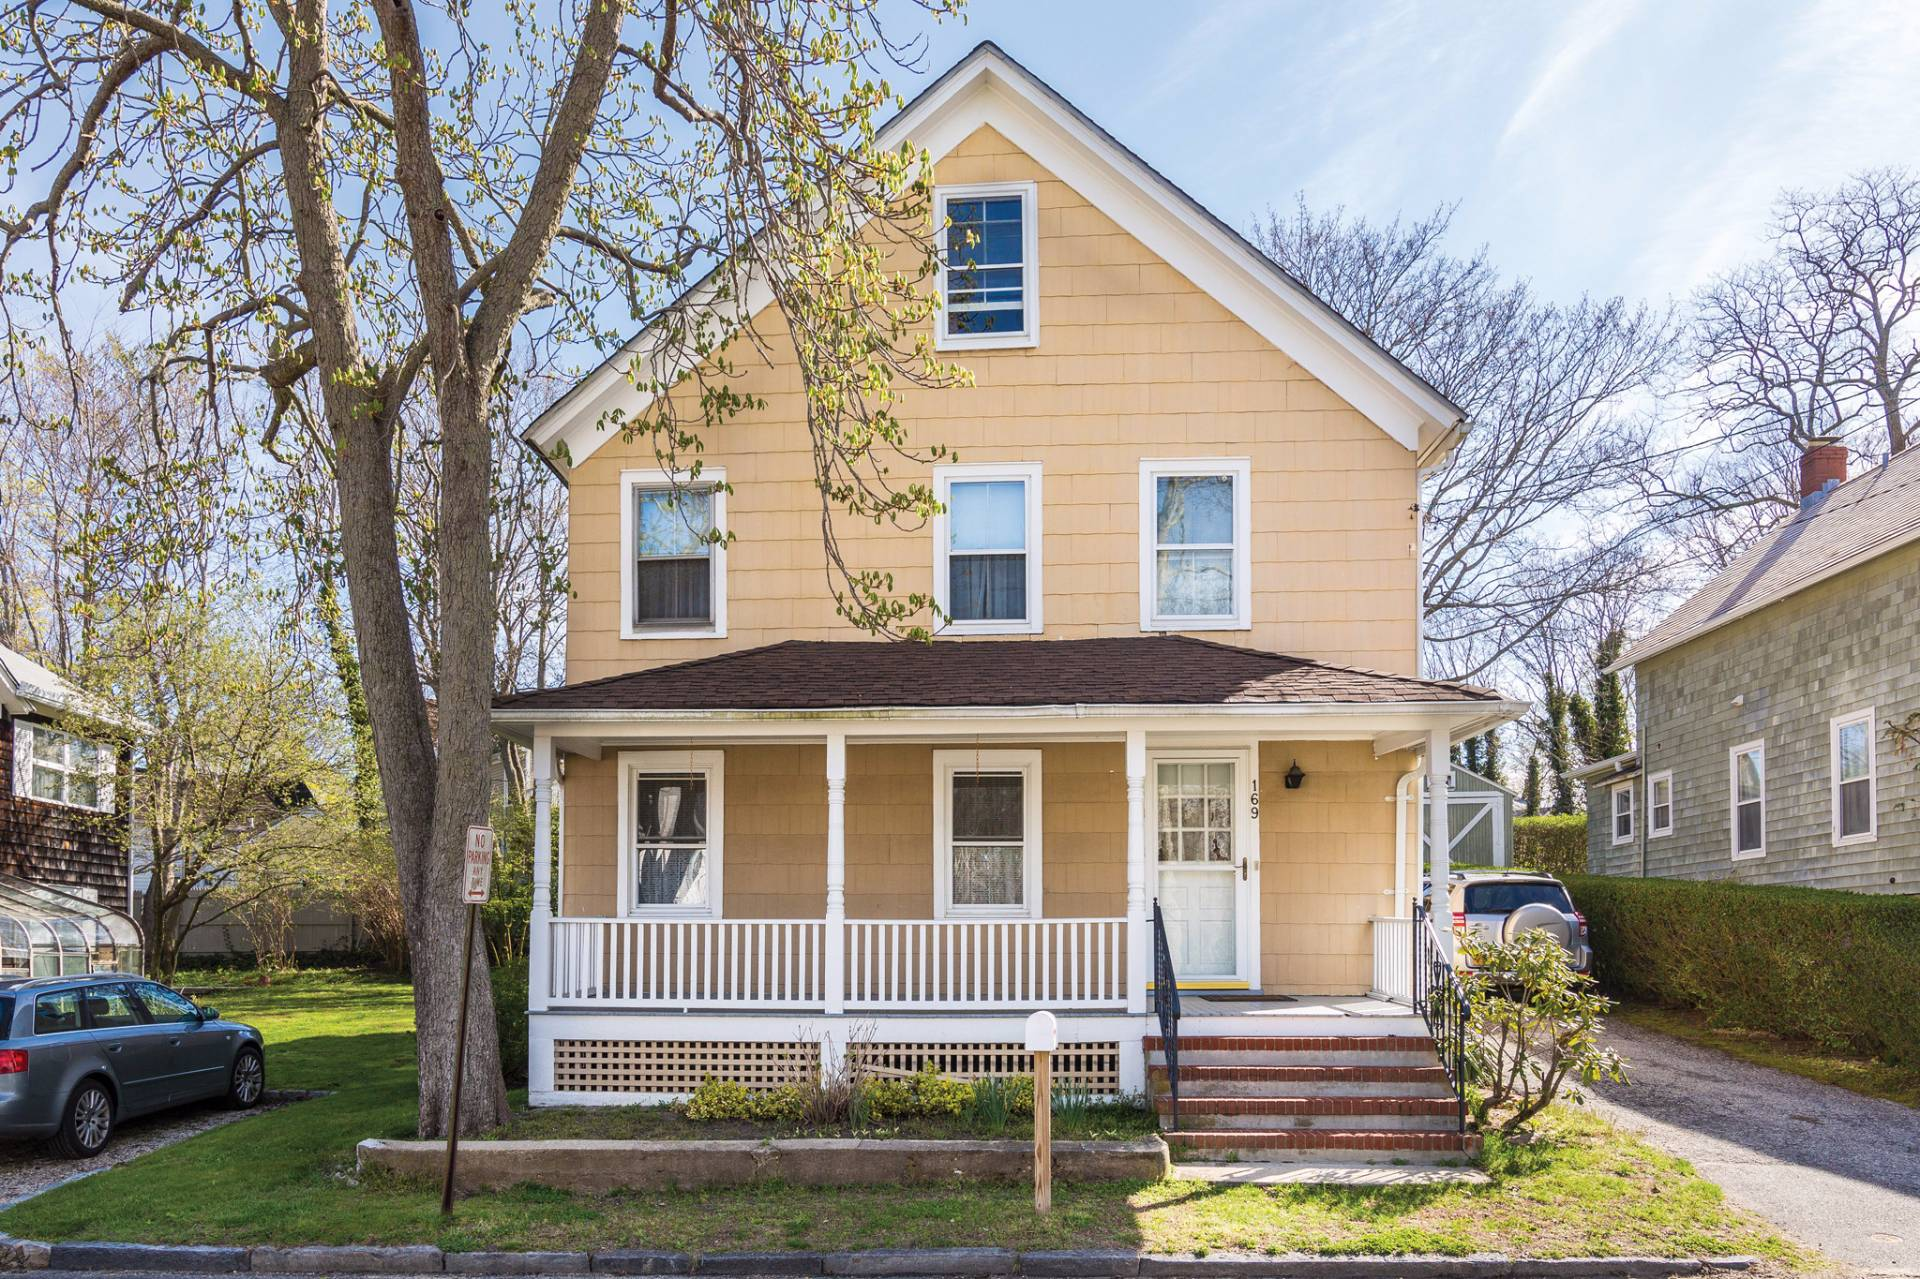 Single Family Home for Sale at Sag Harbor Village Circa 1870 169 Division Street, Sag Harbor, New York